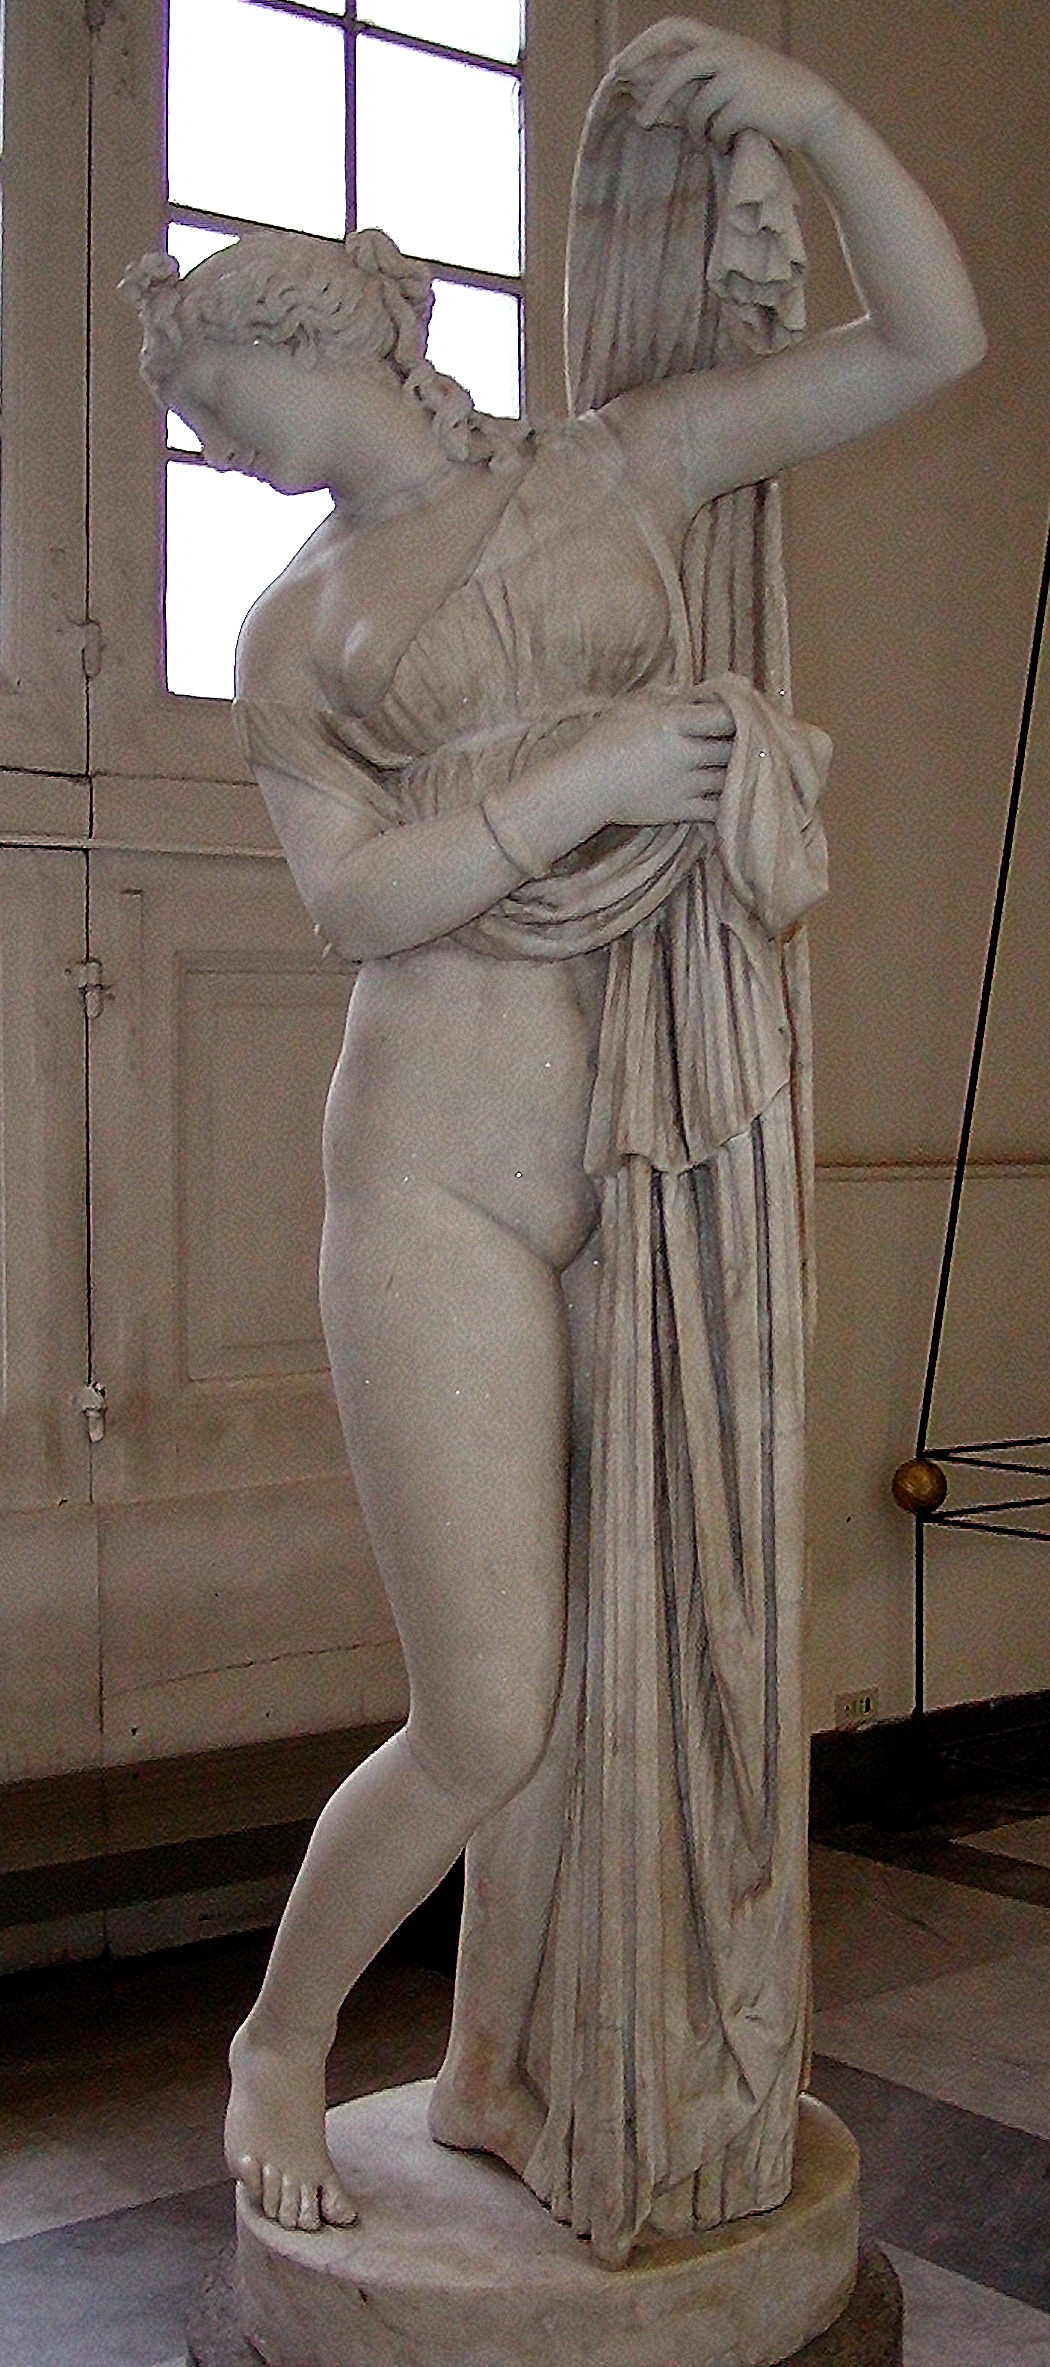 Venus Callypige, Napoli, Greco-Roman sculpture of an Hellenistic Greek sculpture, 7